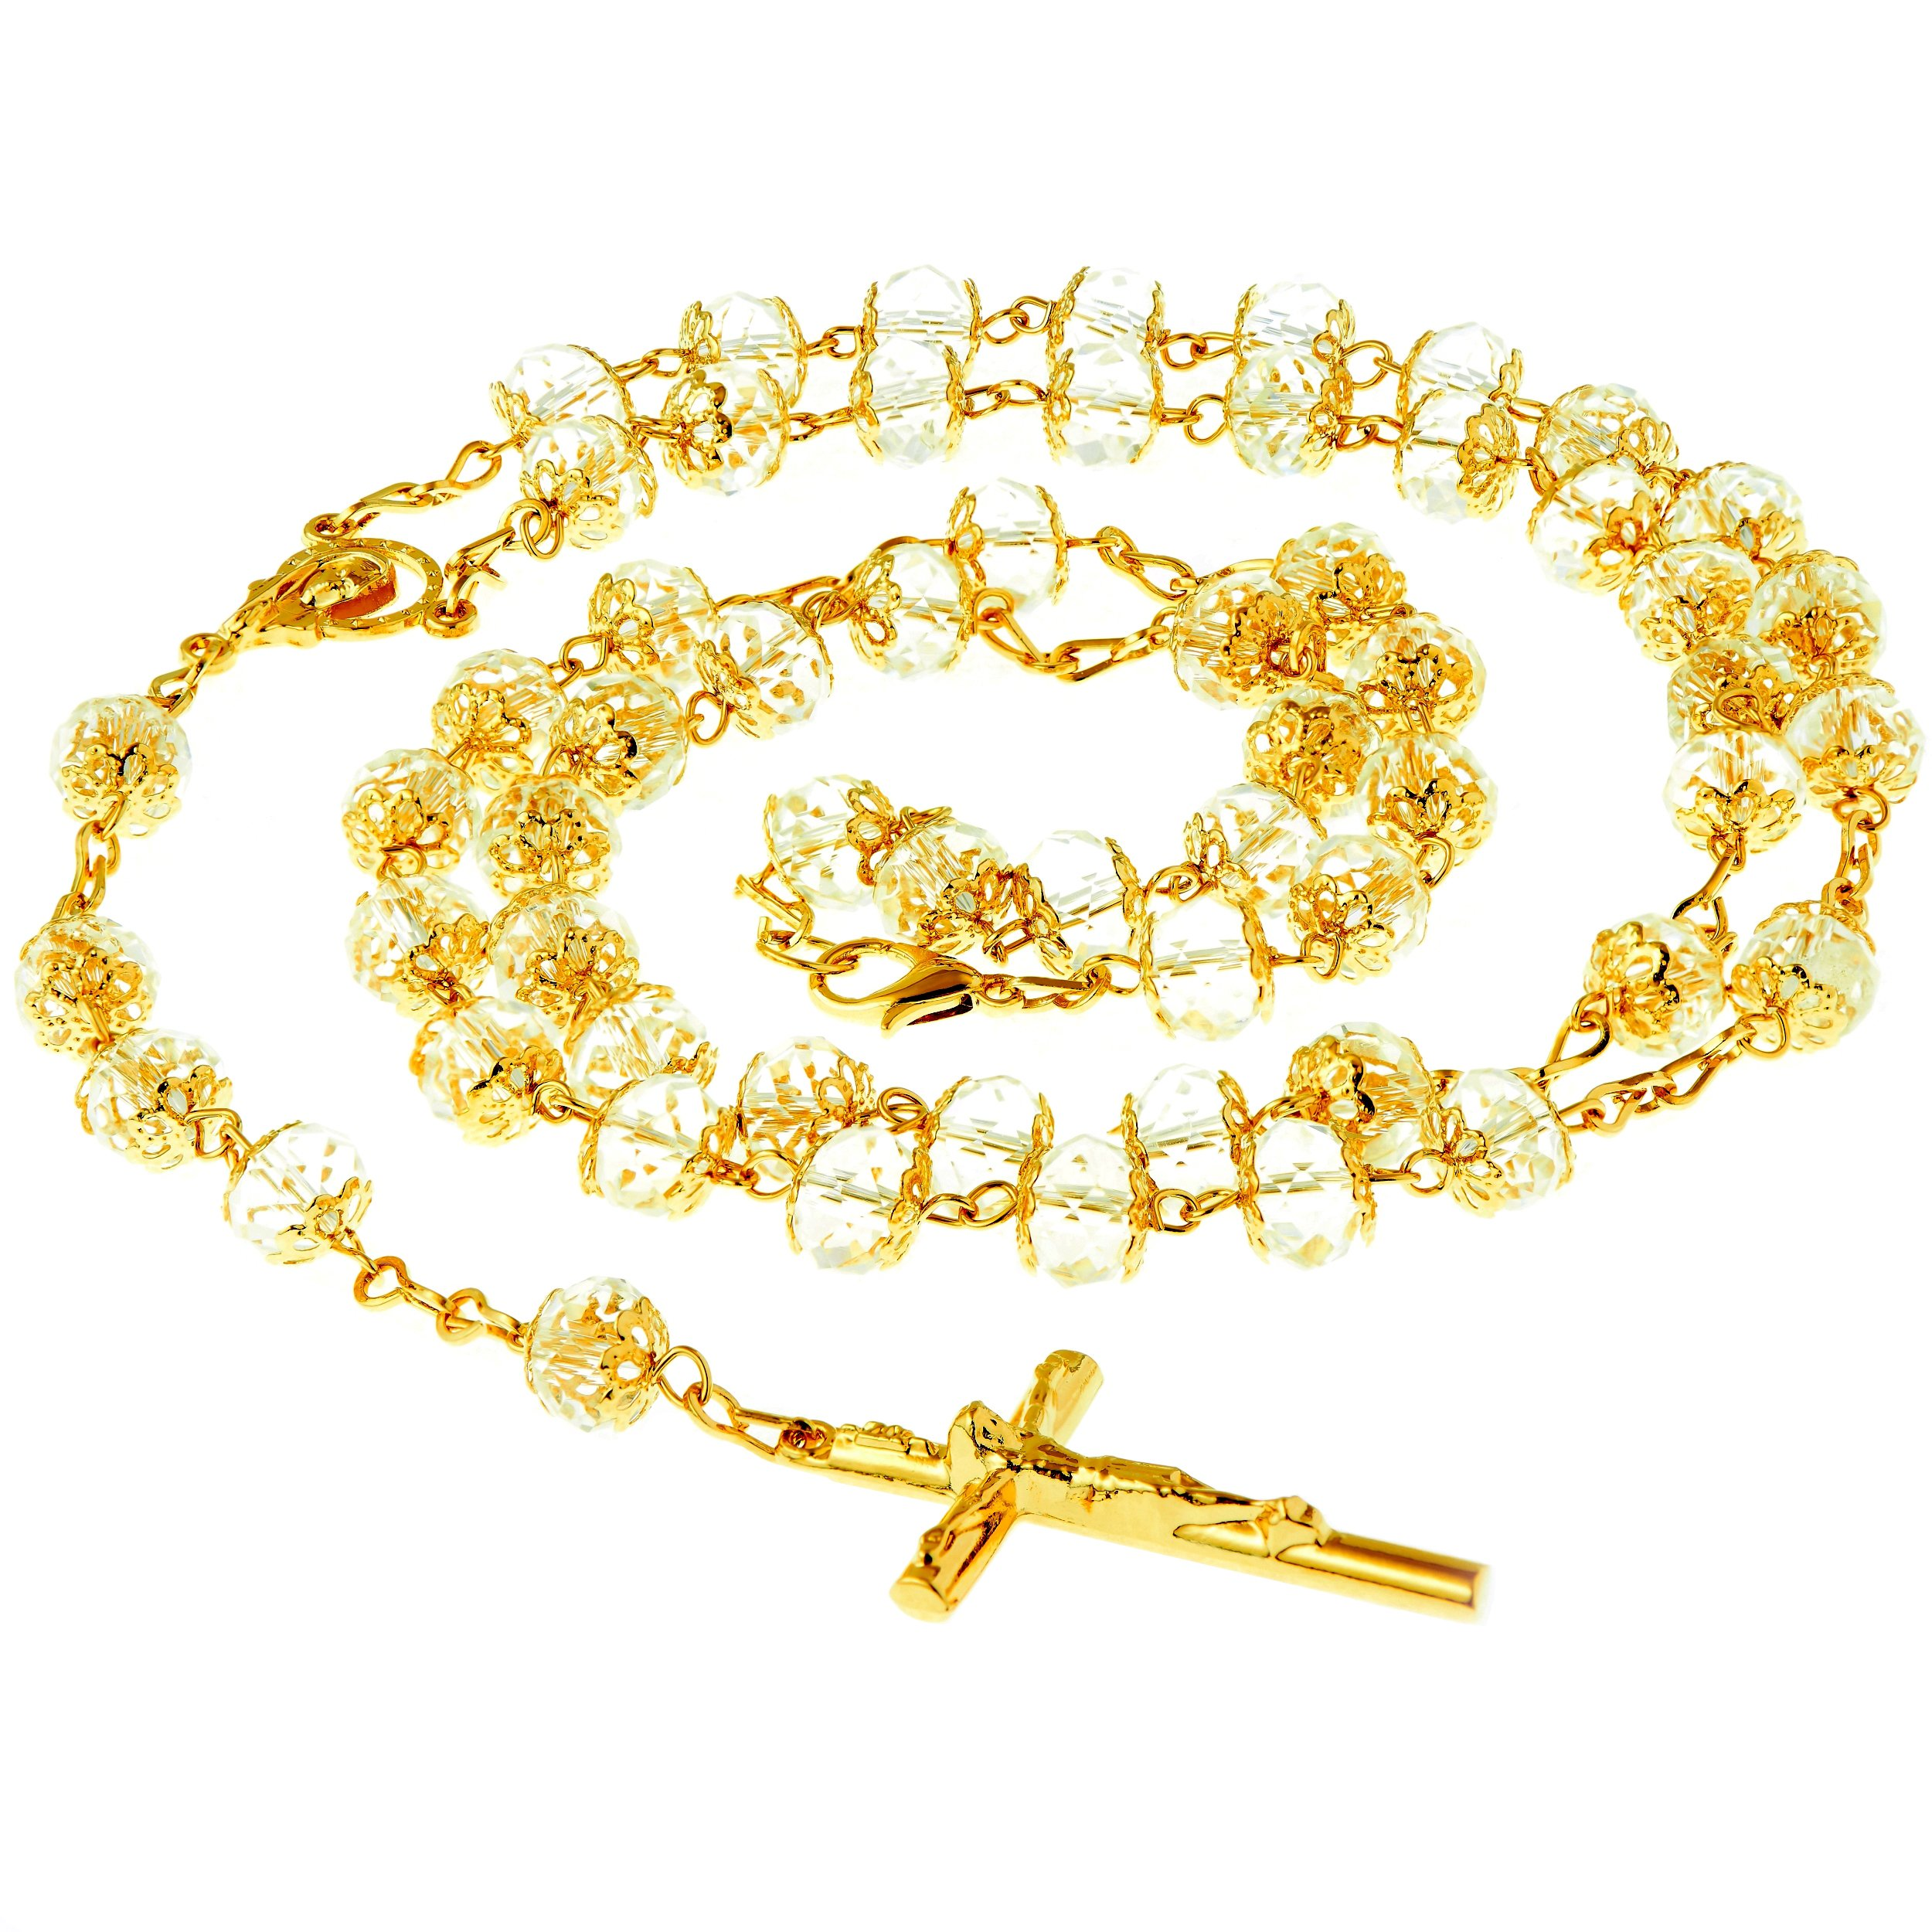 Rosary Necklace, Crystal Prayer Beads, 24K Gold Over Bronze, Catholic Crucifix and Virgin Mary Center, Guaranteed for Life, 28-30 Inches